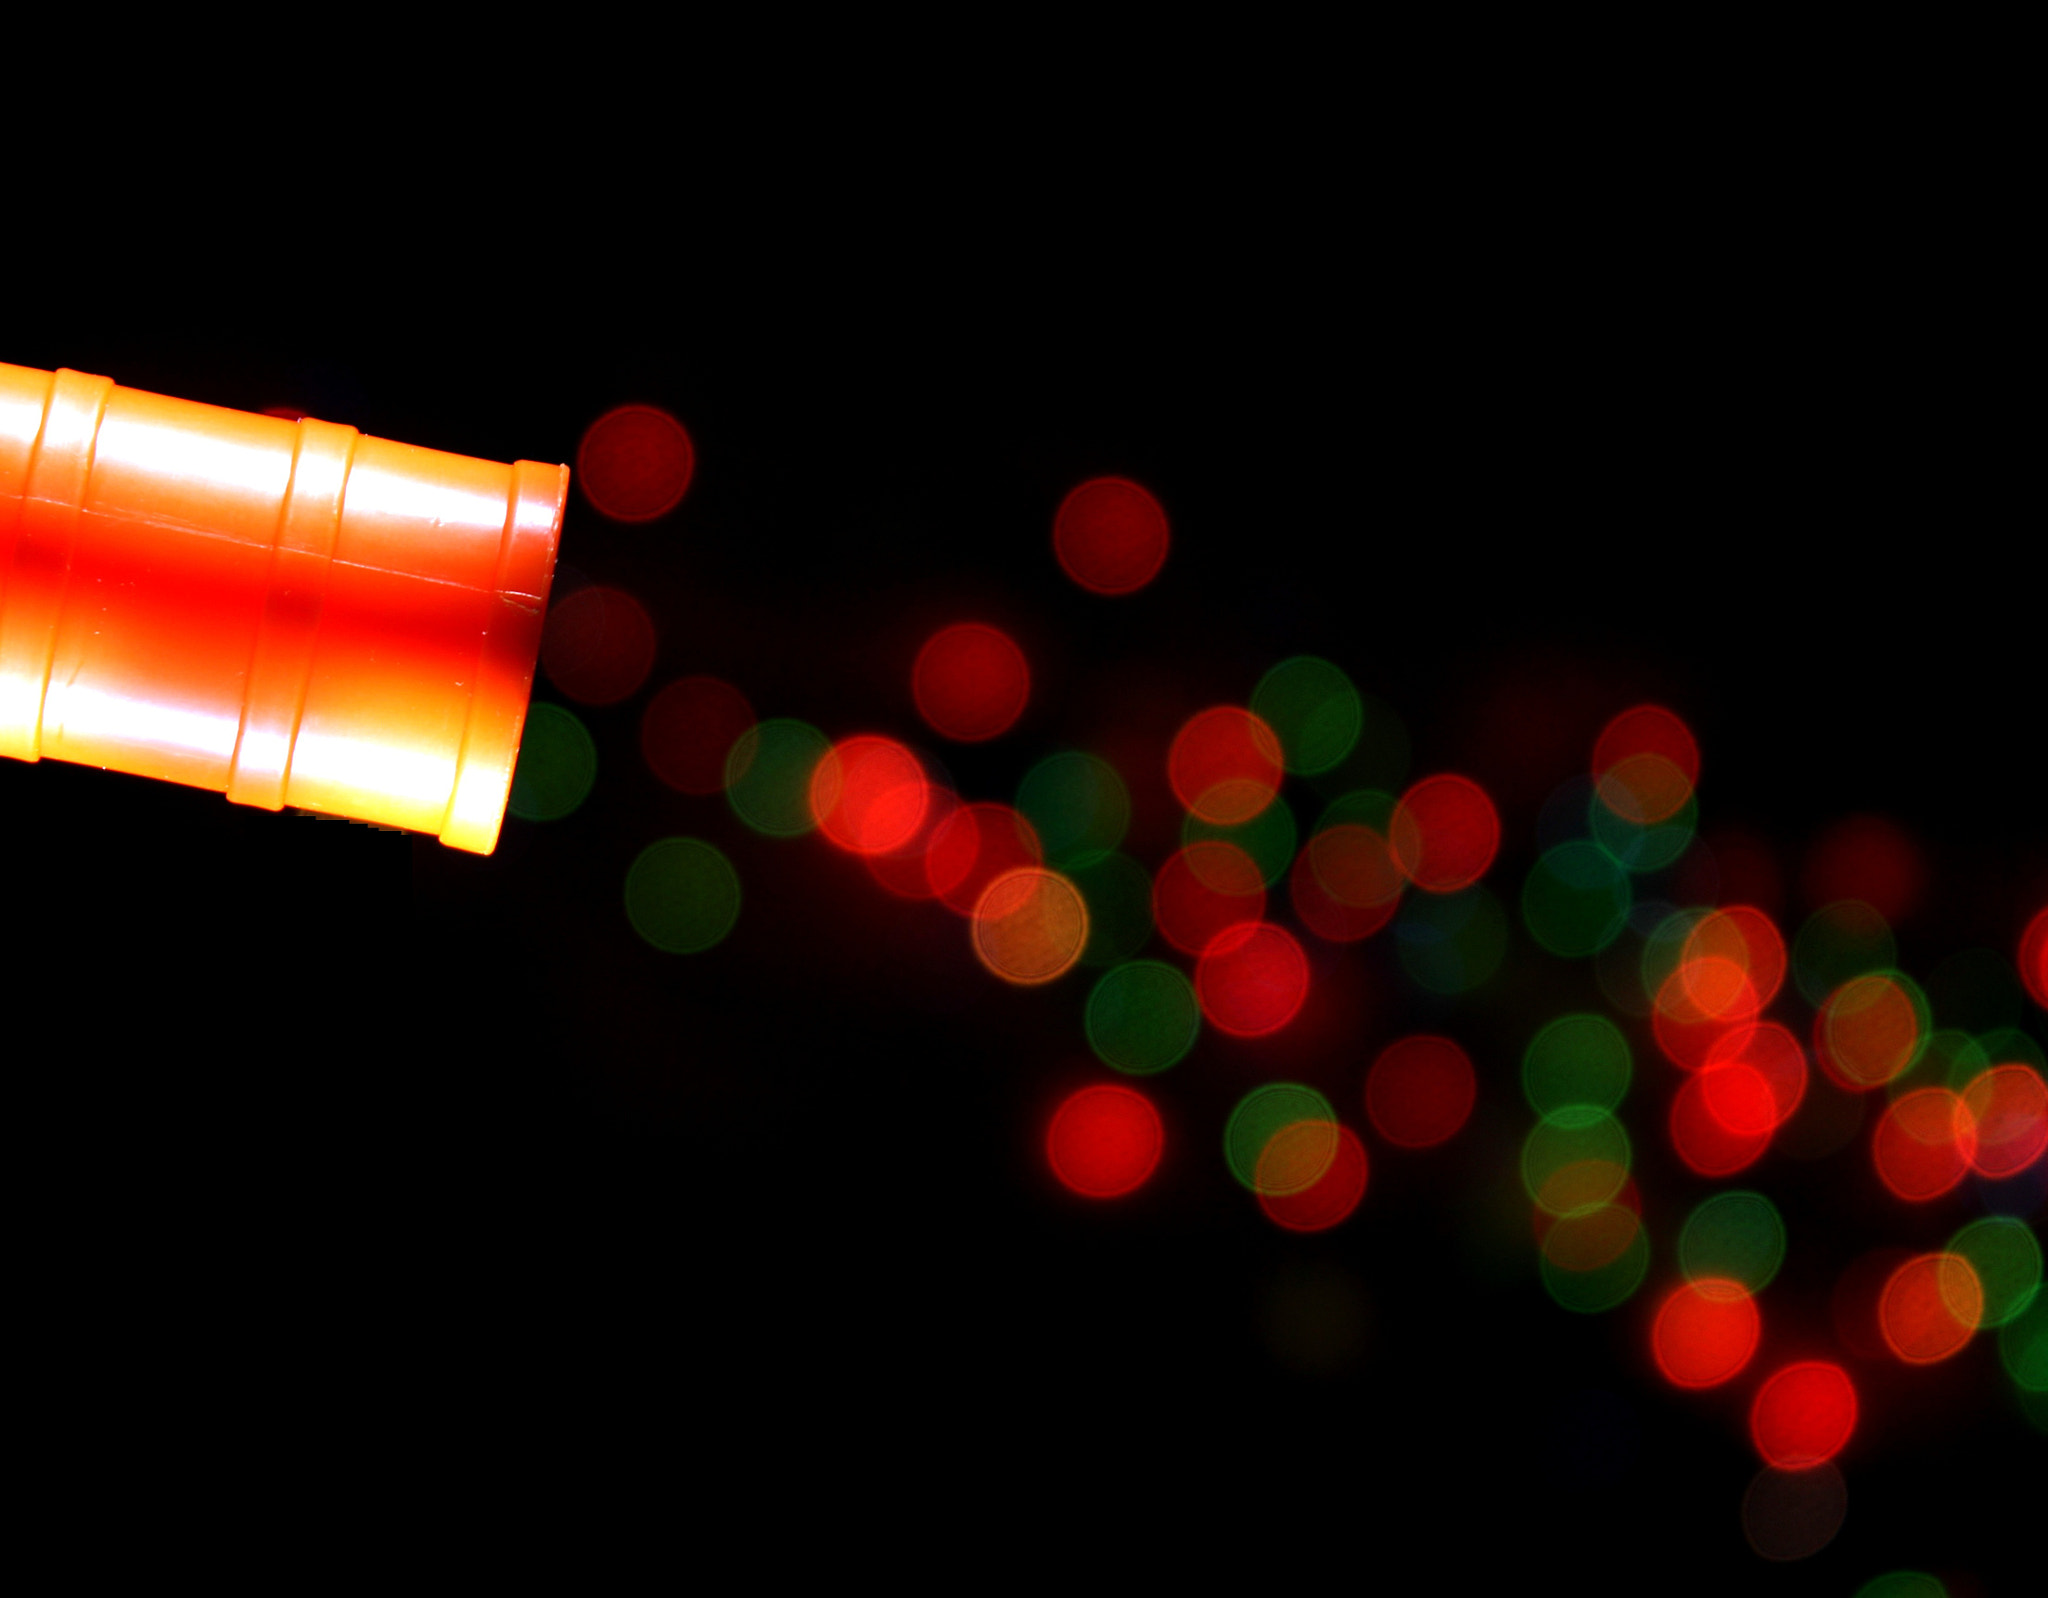 Photograph Bokeh by Bhavesh Bhagat on 500px